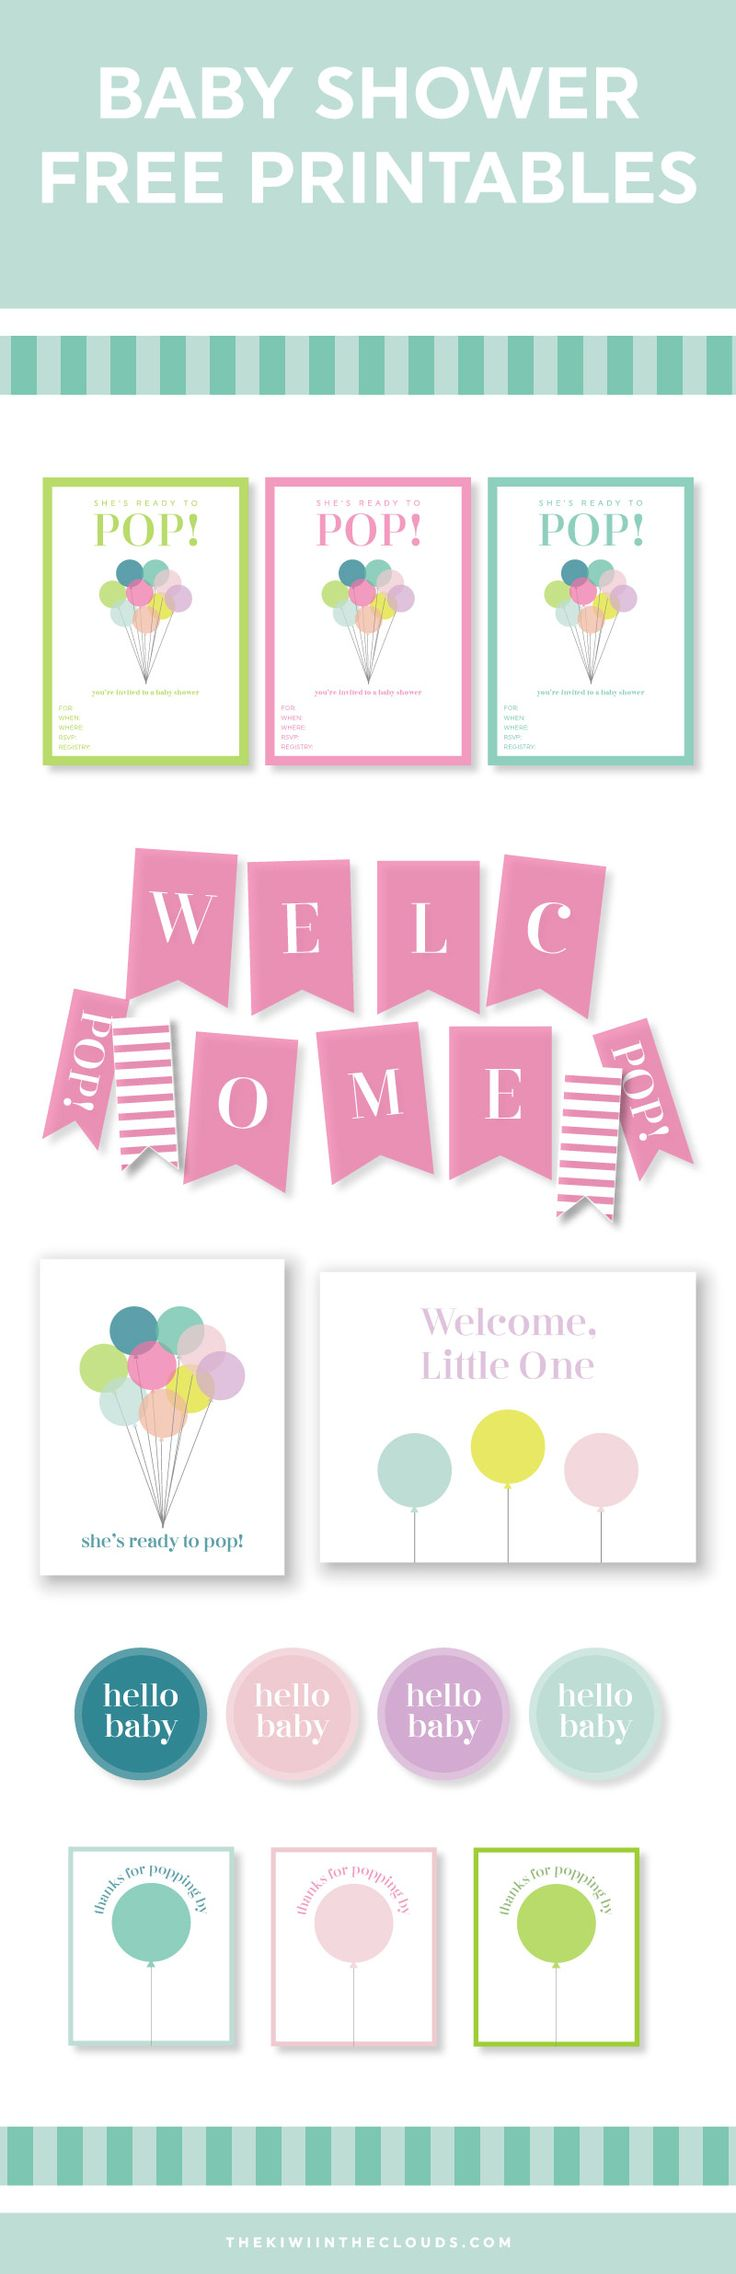 49 best Baby Shower Printables images on Pinterest | Shower ...